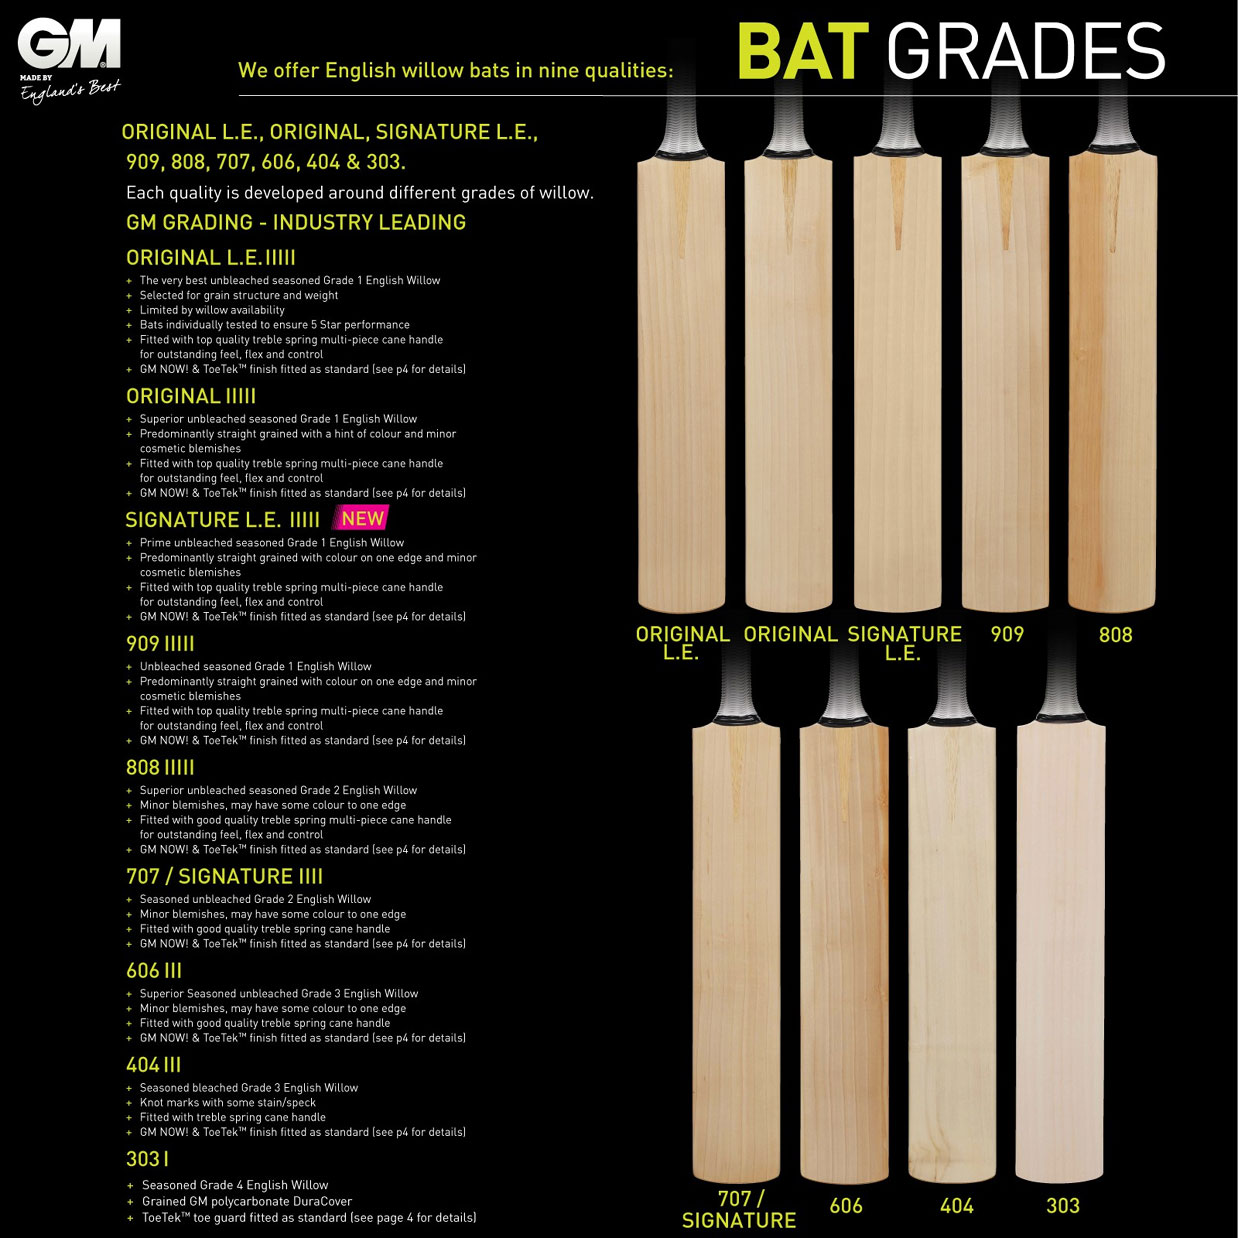 Gunn & Moore Guide to Cricket Bat Grades